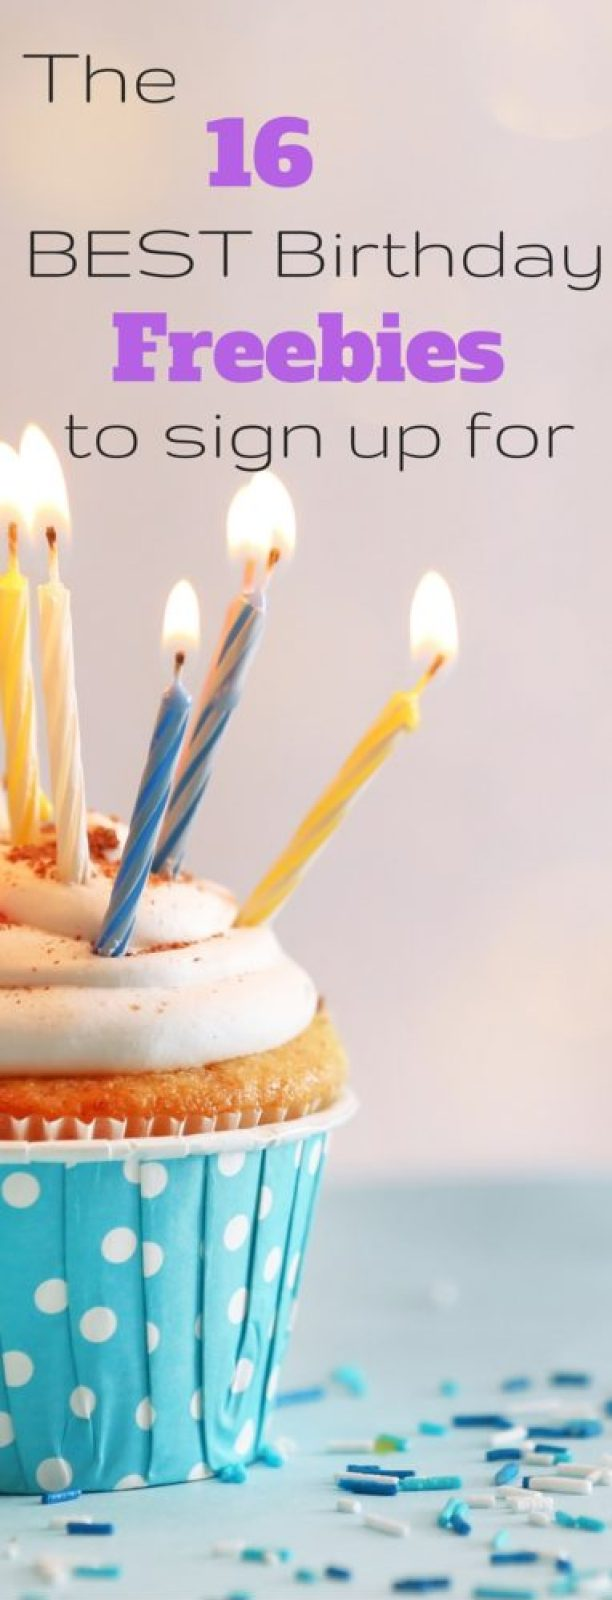 The BEST birthday freebies to sign up for - lots of free food with no purchase necessary!